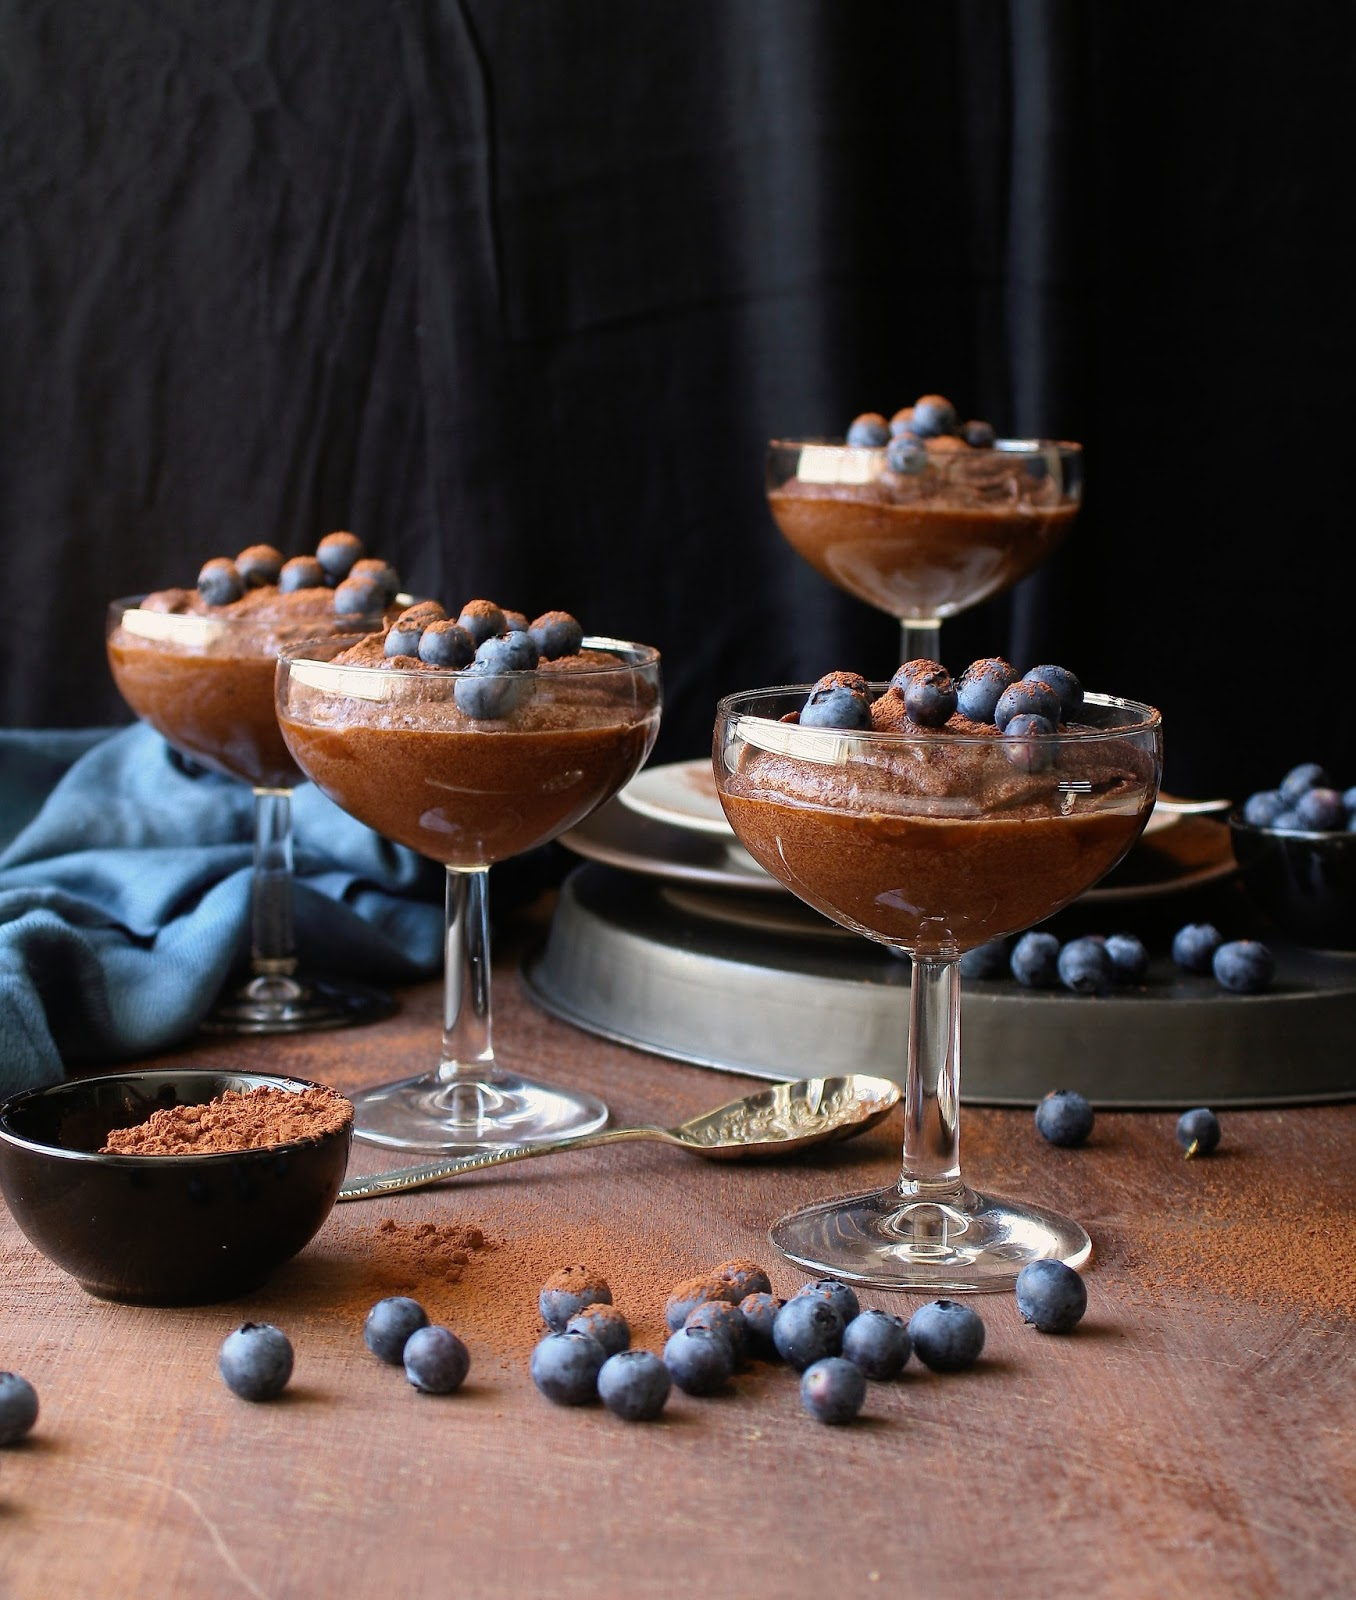 Delicious chocolate mousse that is sugar and gluten free and vegan.